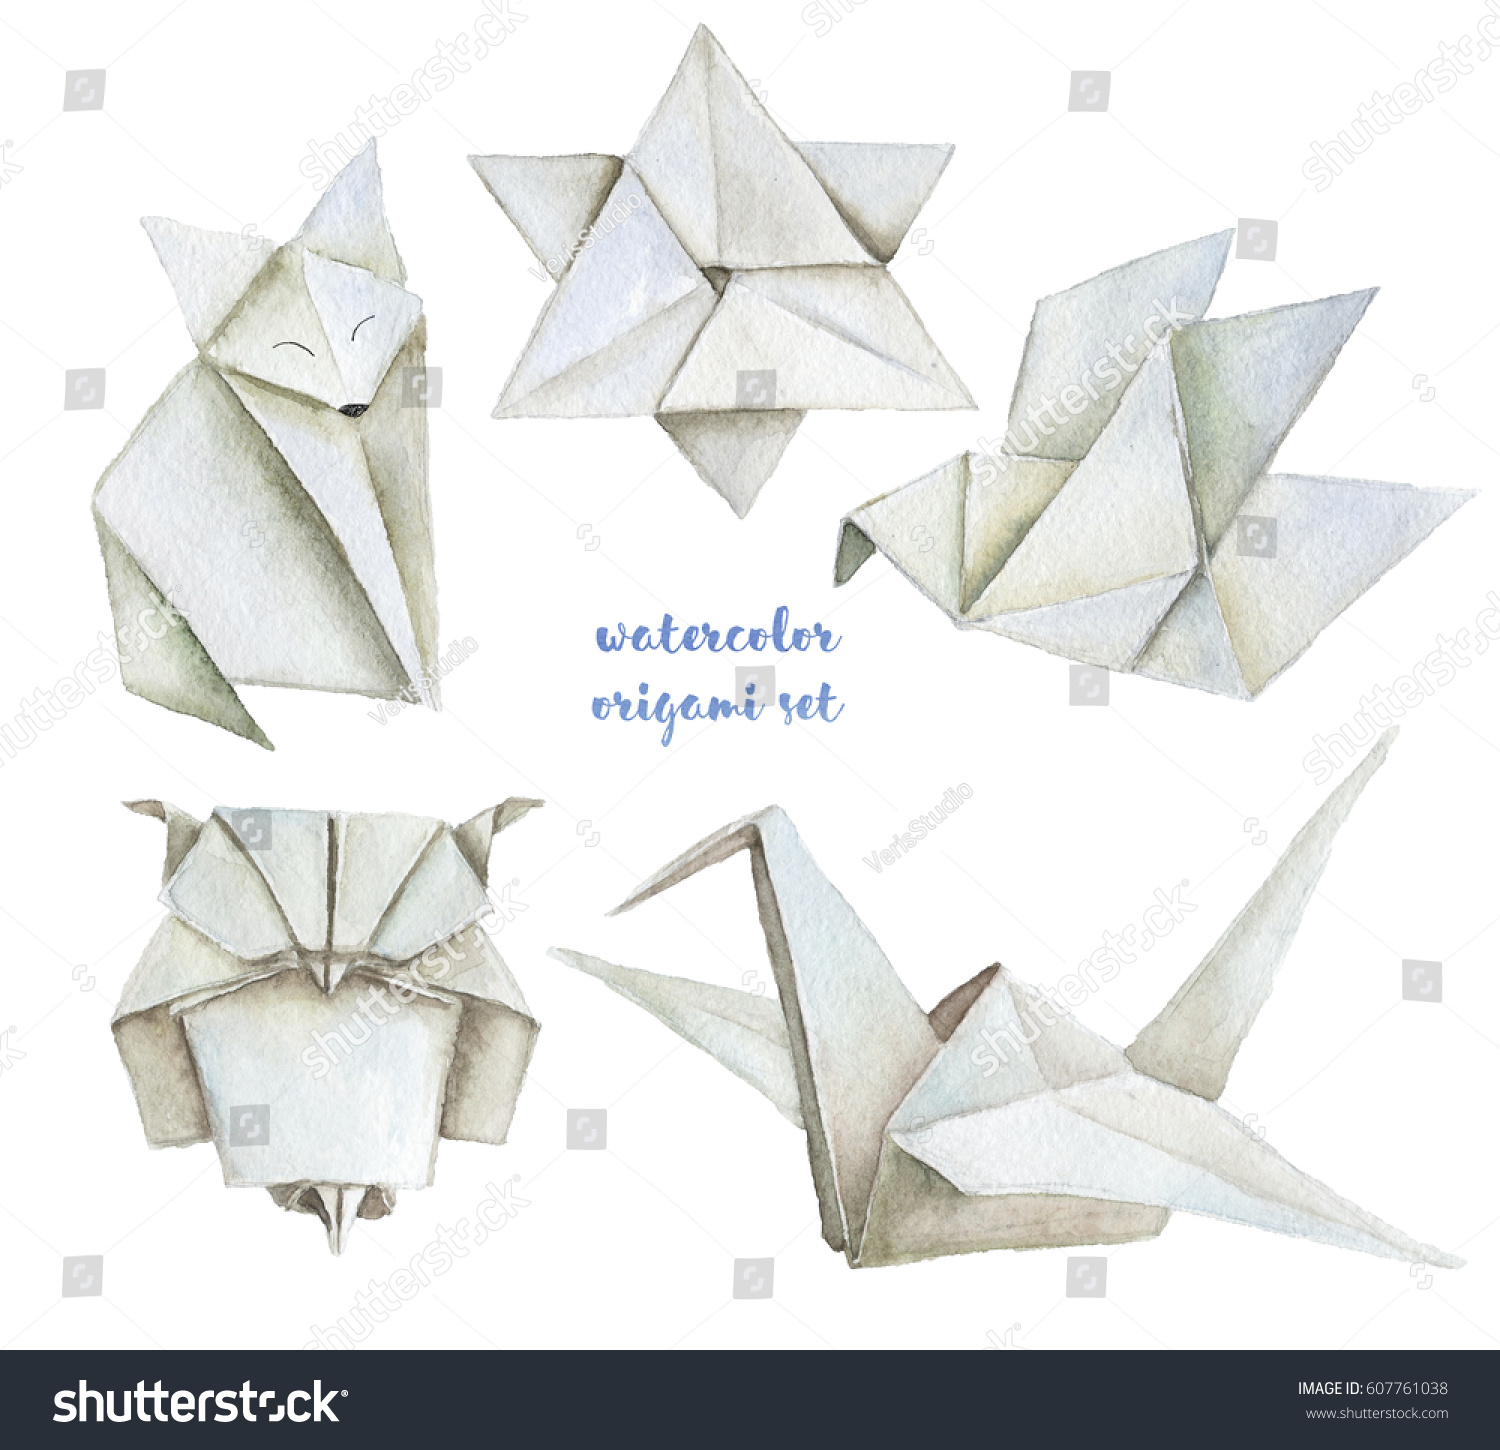 Watercolor Hand Drawn Origami Illustrations Paper Stock ... - photo#20